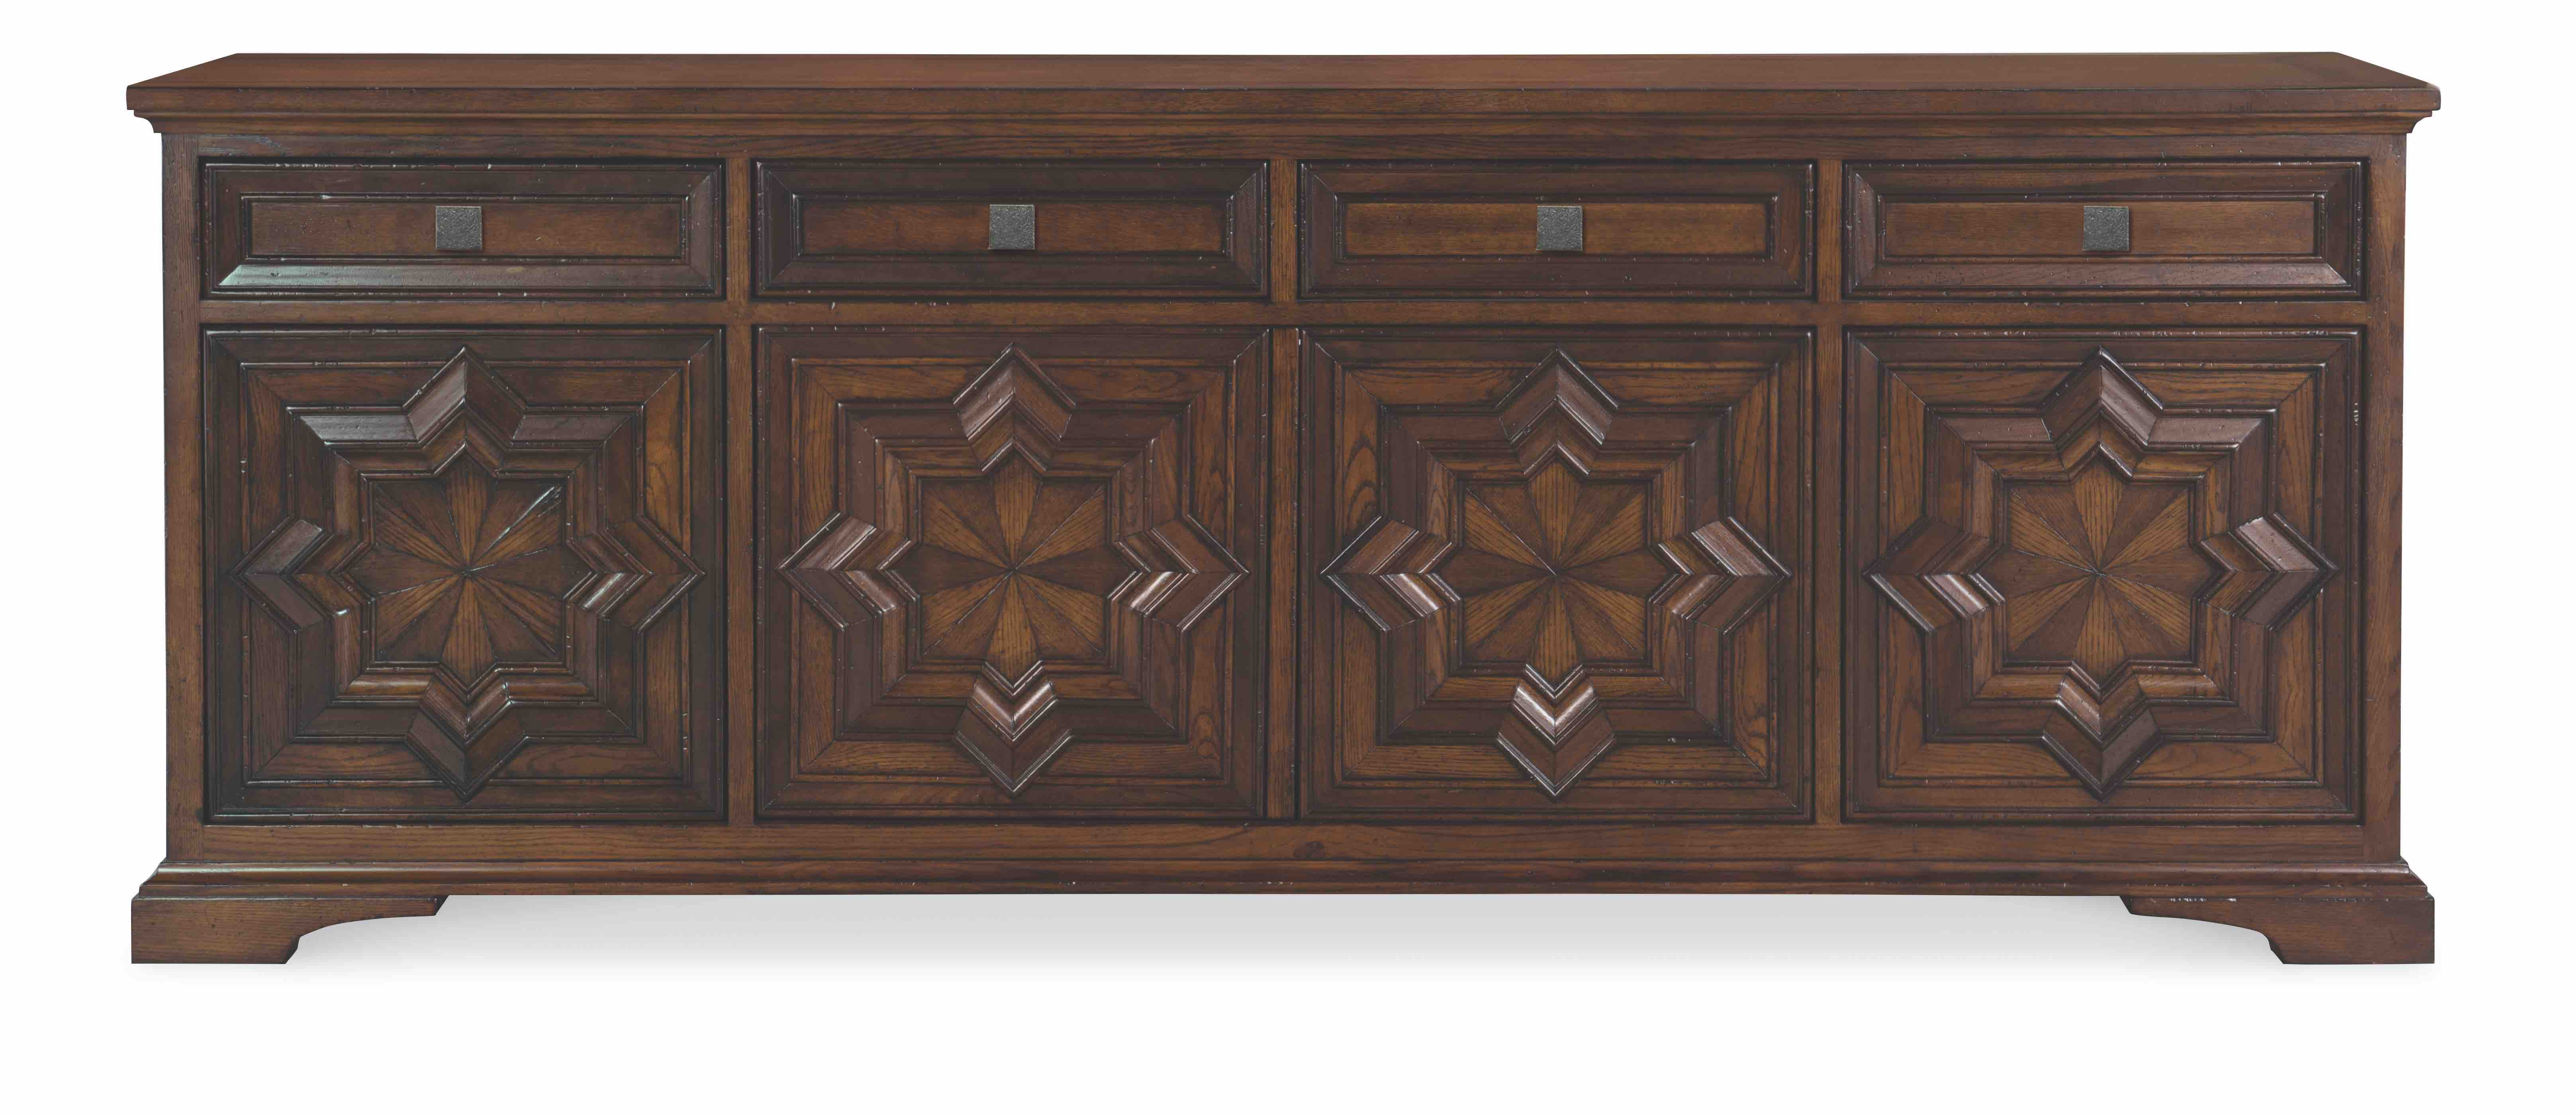 Century Furniture Casa Bella credenza